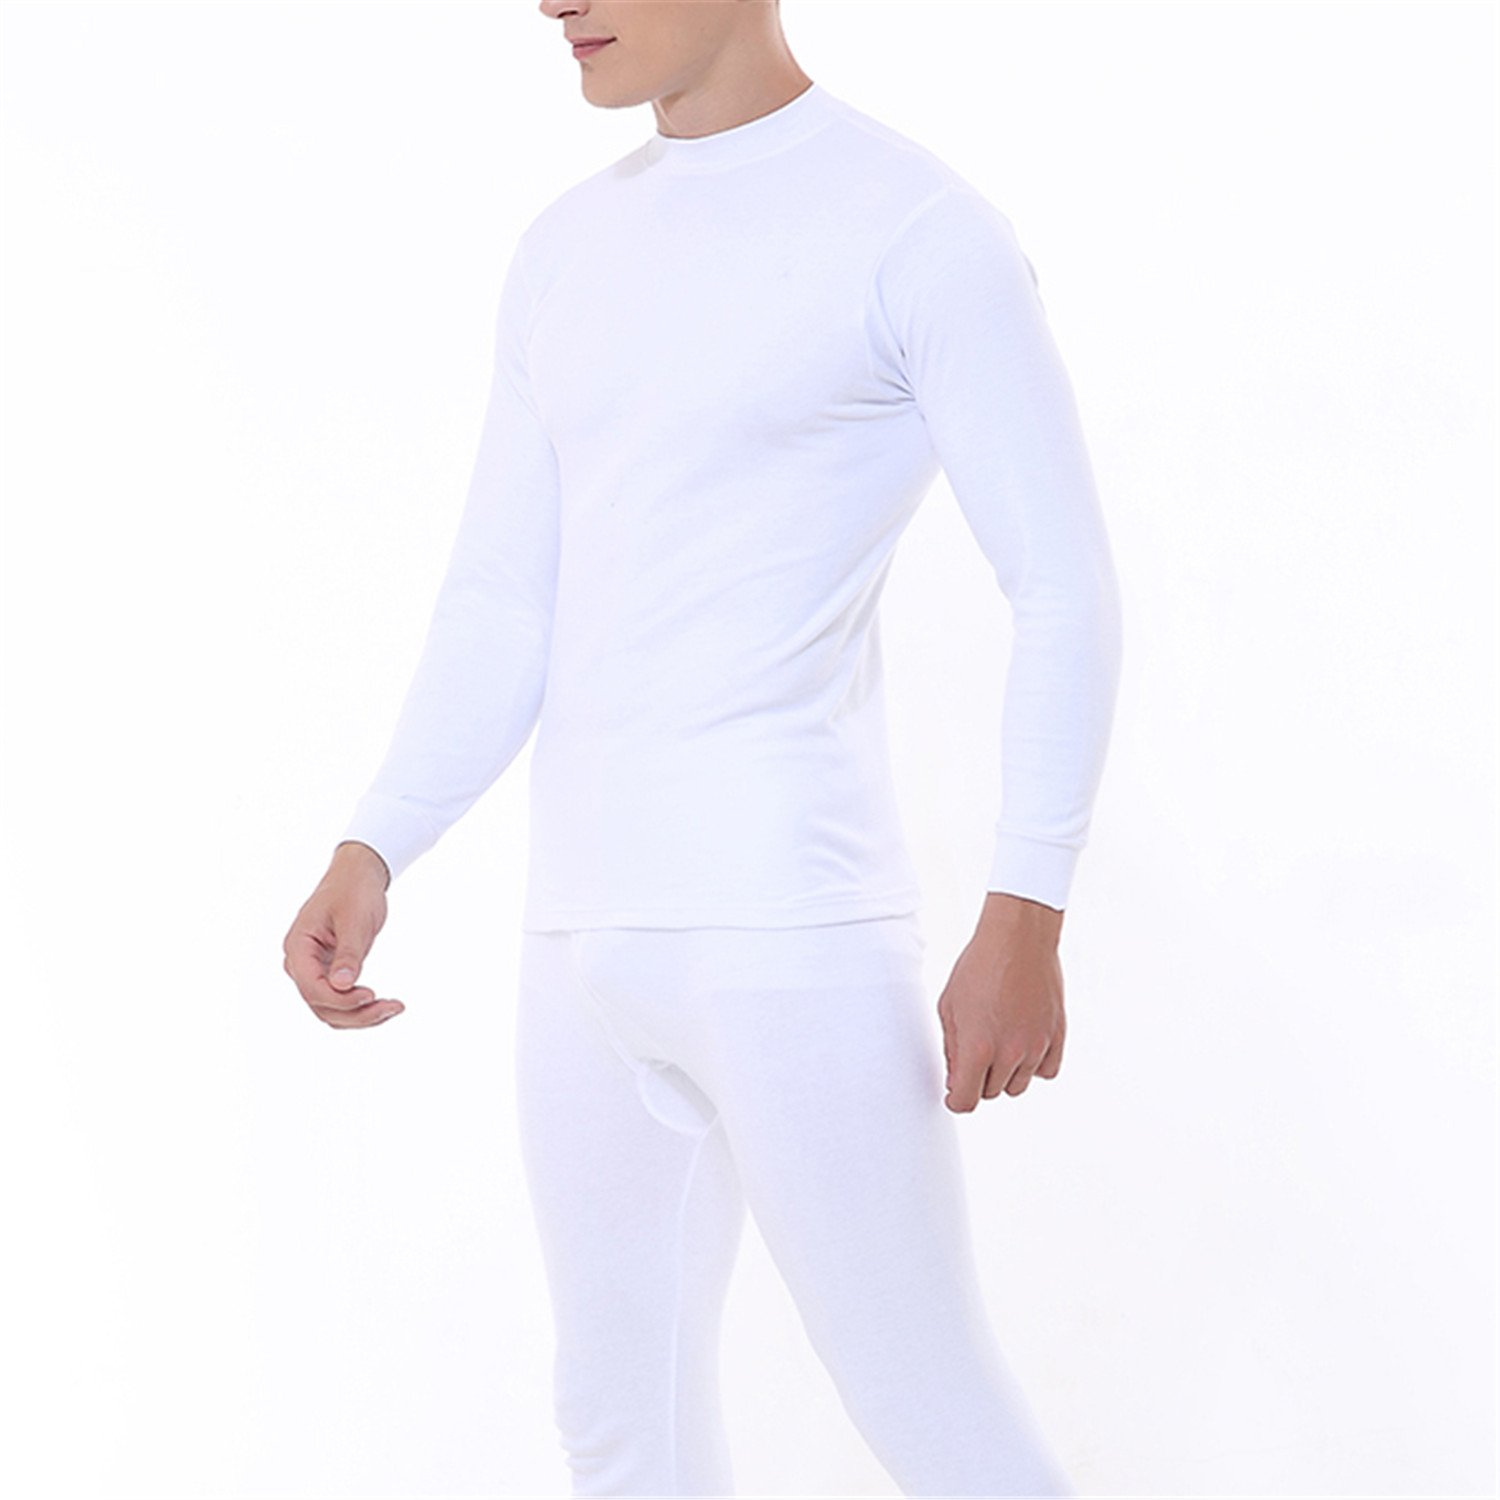 Dapengzhu Men's Women's Thermal Underwear Sets Pure Cotton Male And le Soft Thin Warm Long In Autumn And Winter WHITE M563M565 L